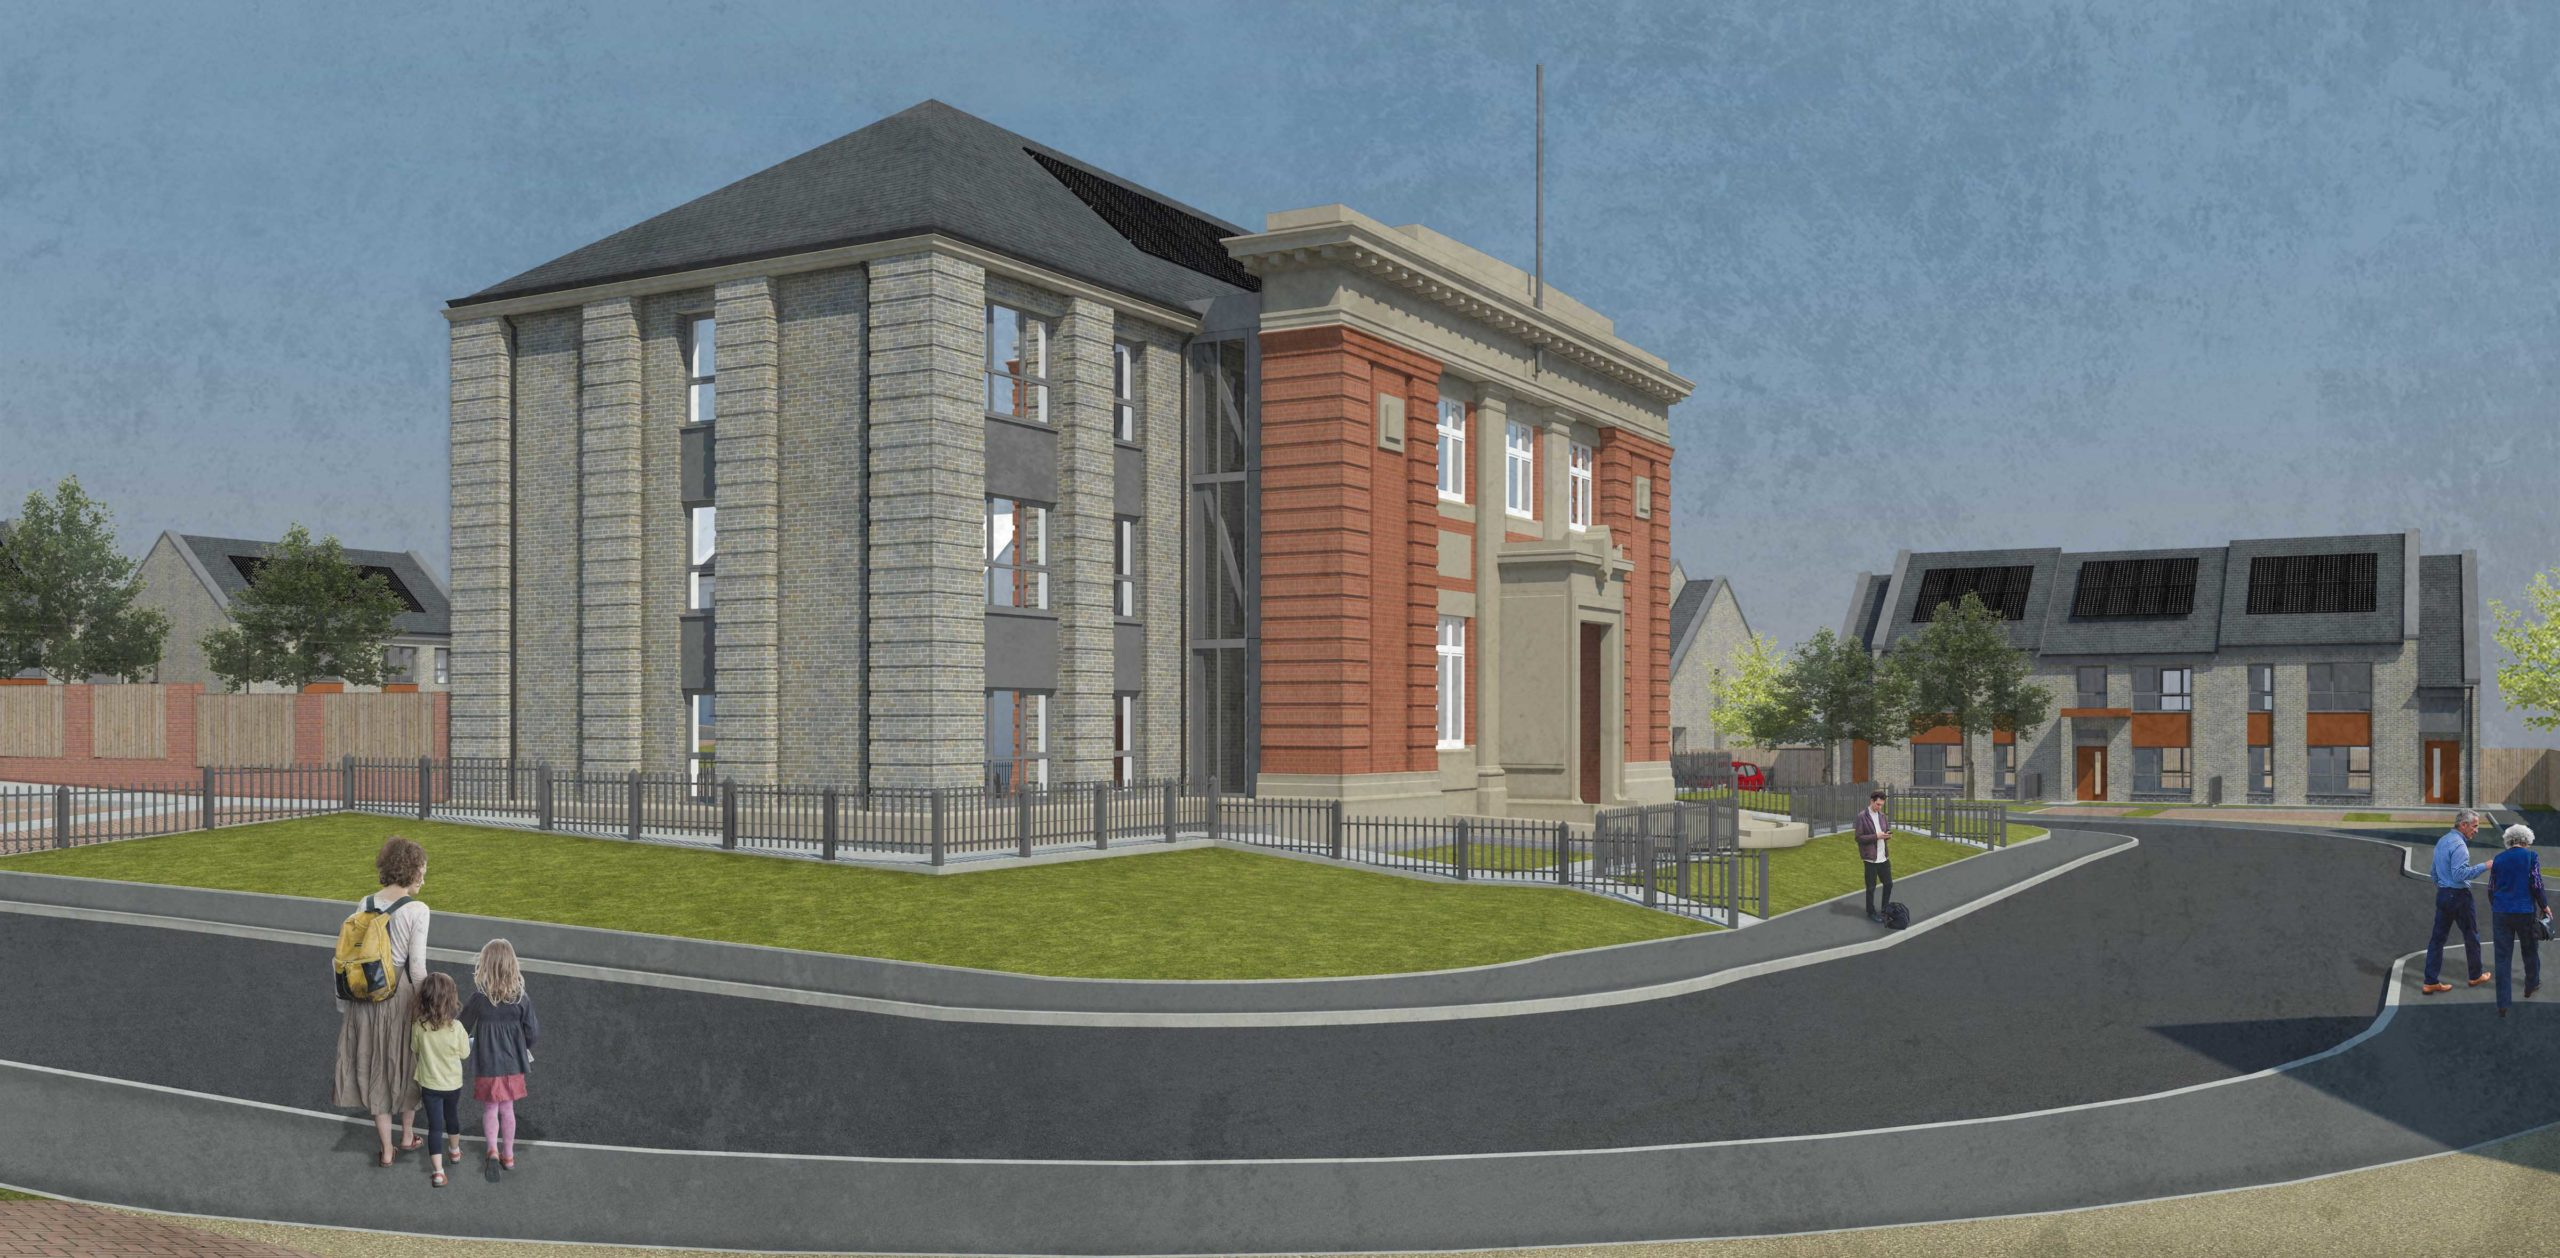 Linthouse Housing Association designs by Grant Murray Architects